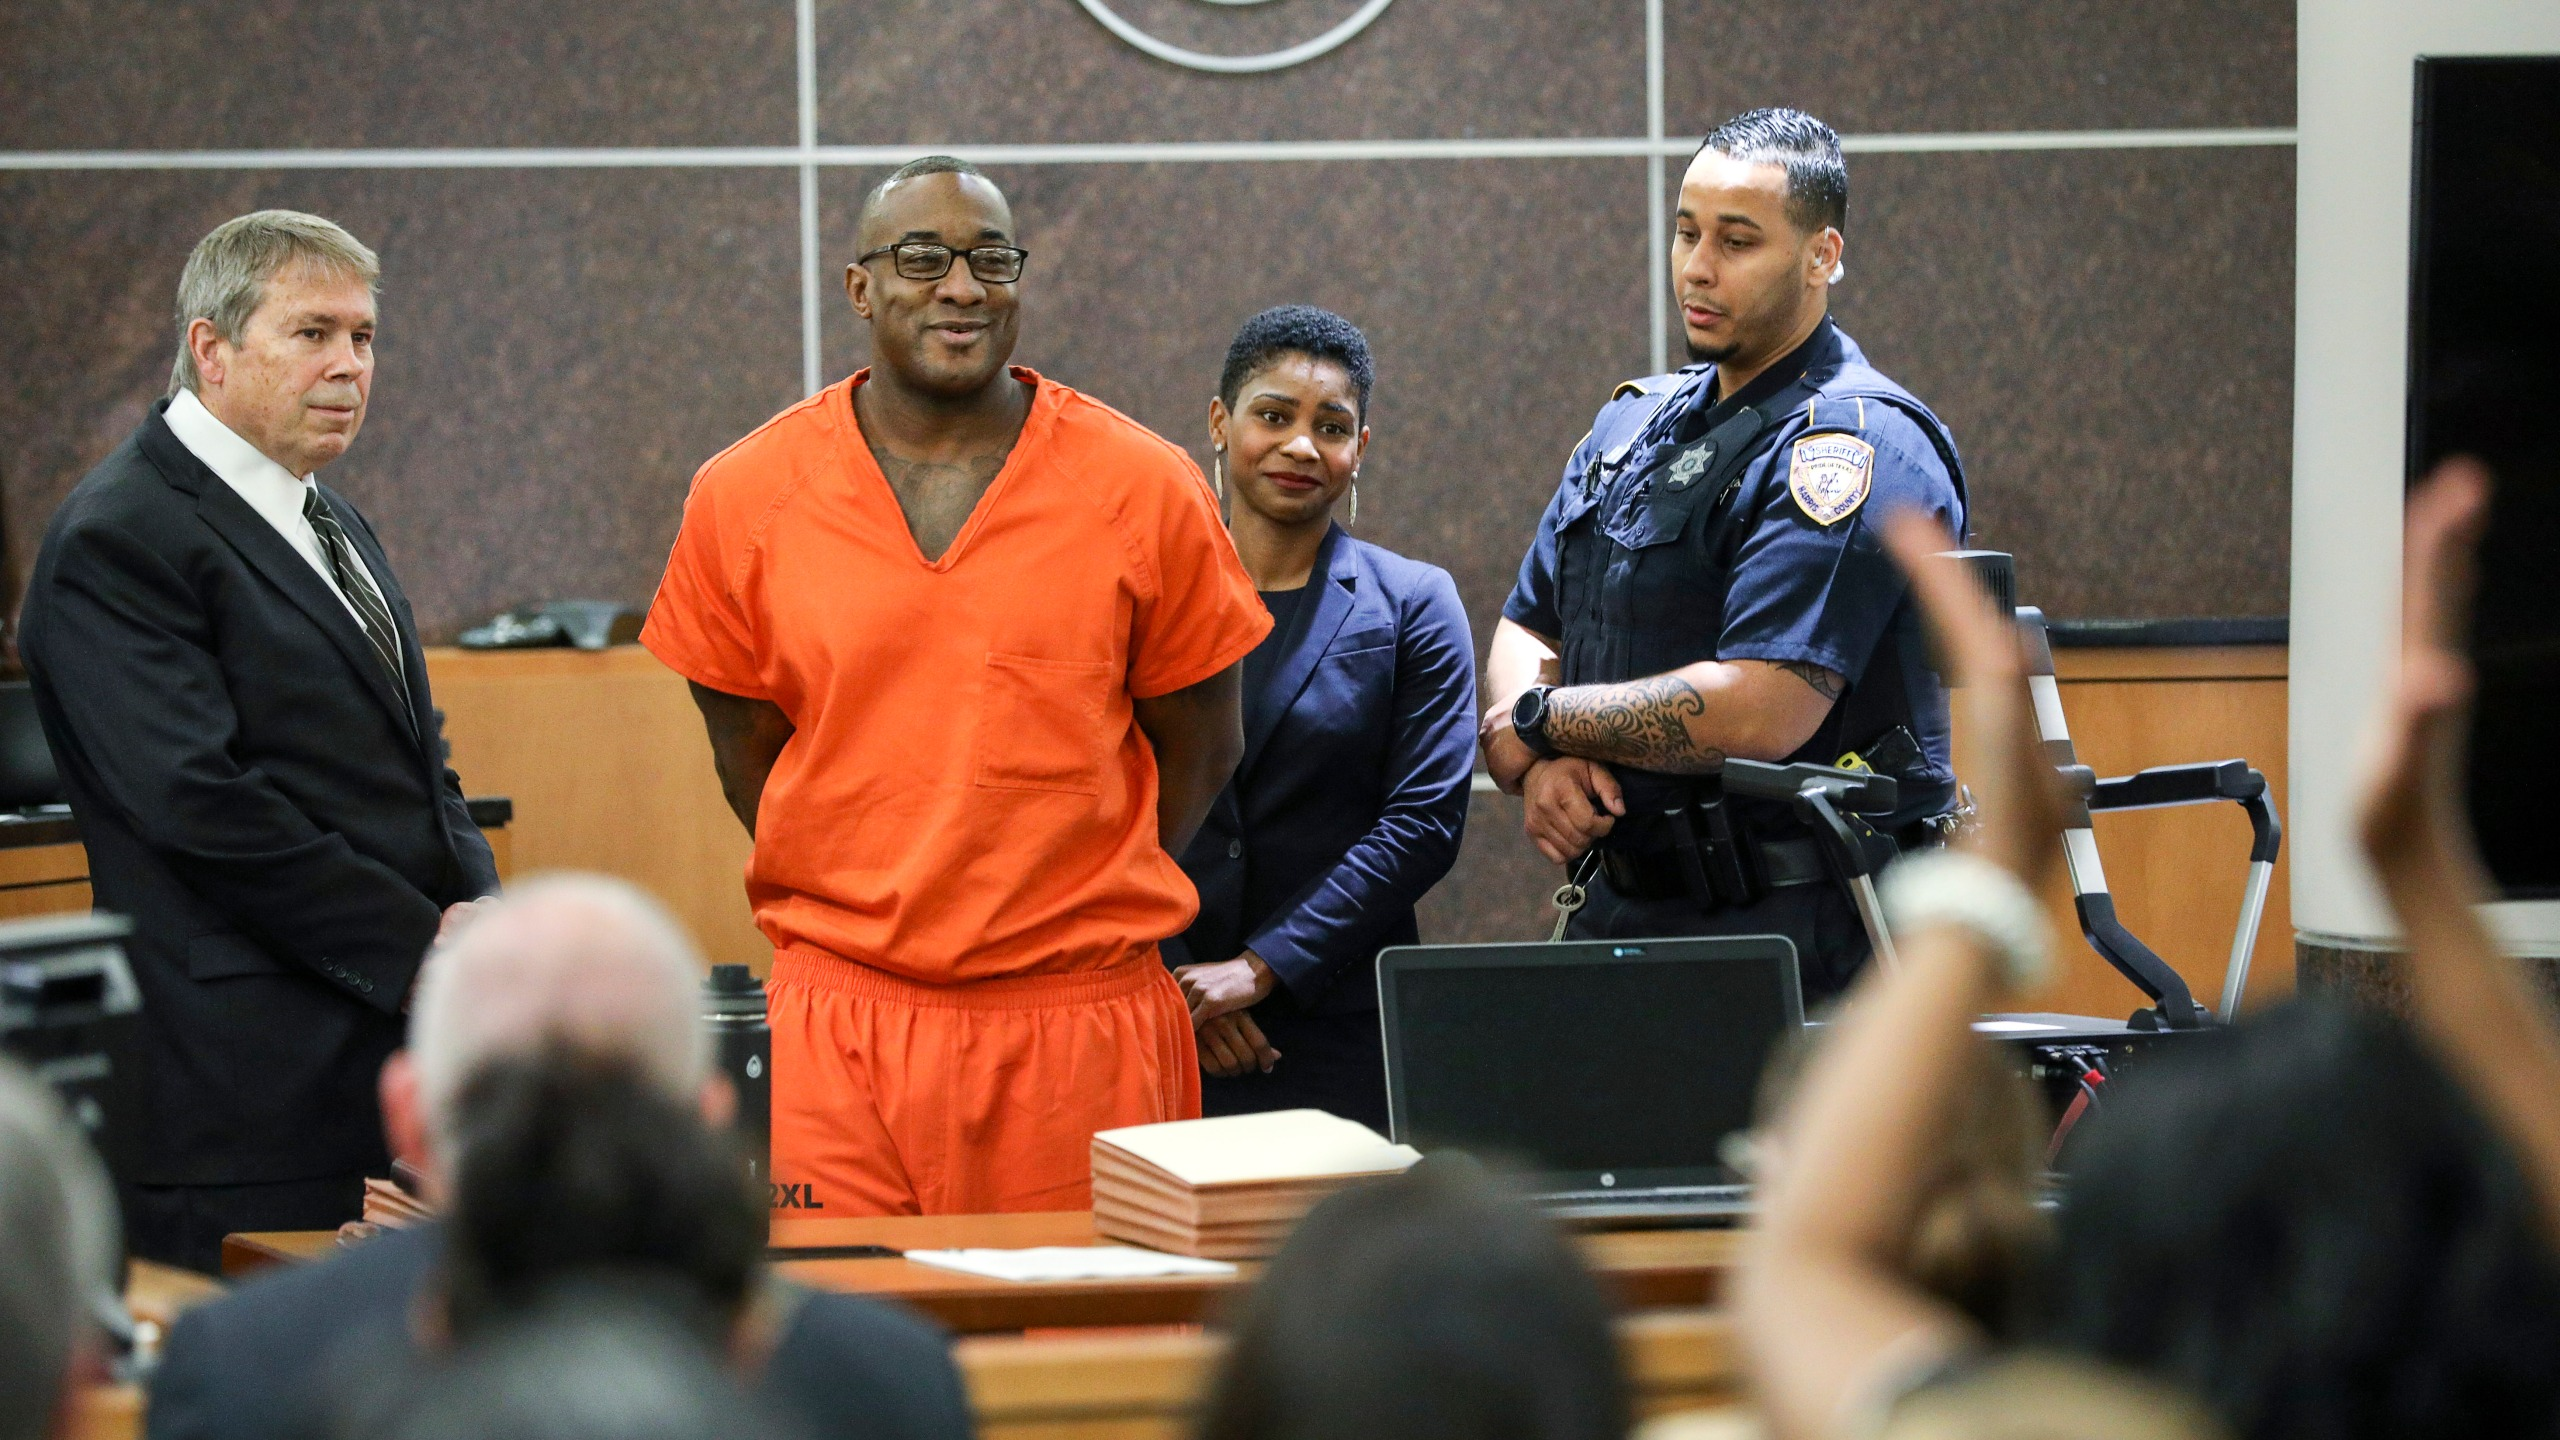 Texas inmate freed while innocence claims investigated